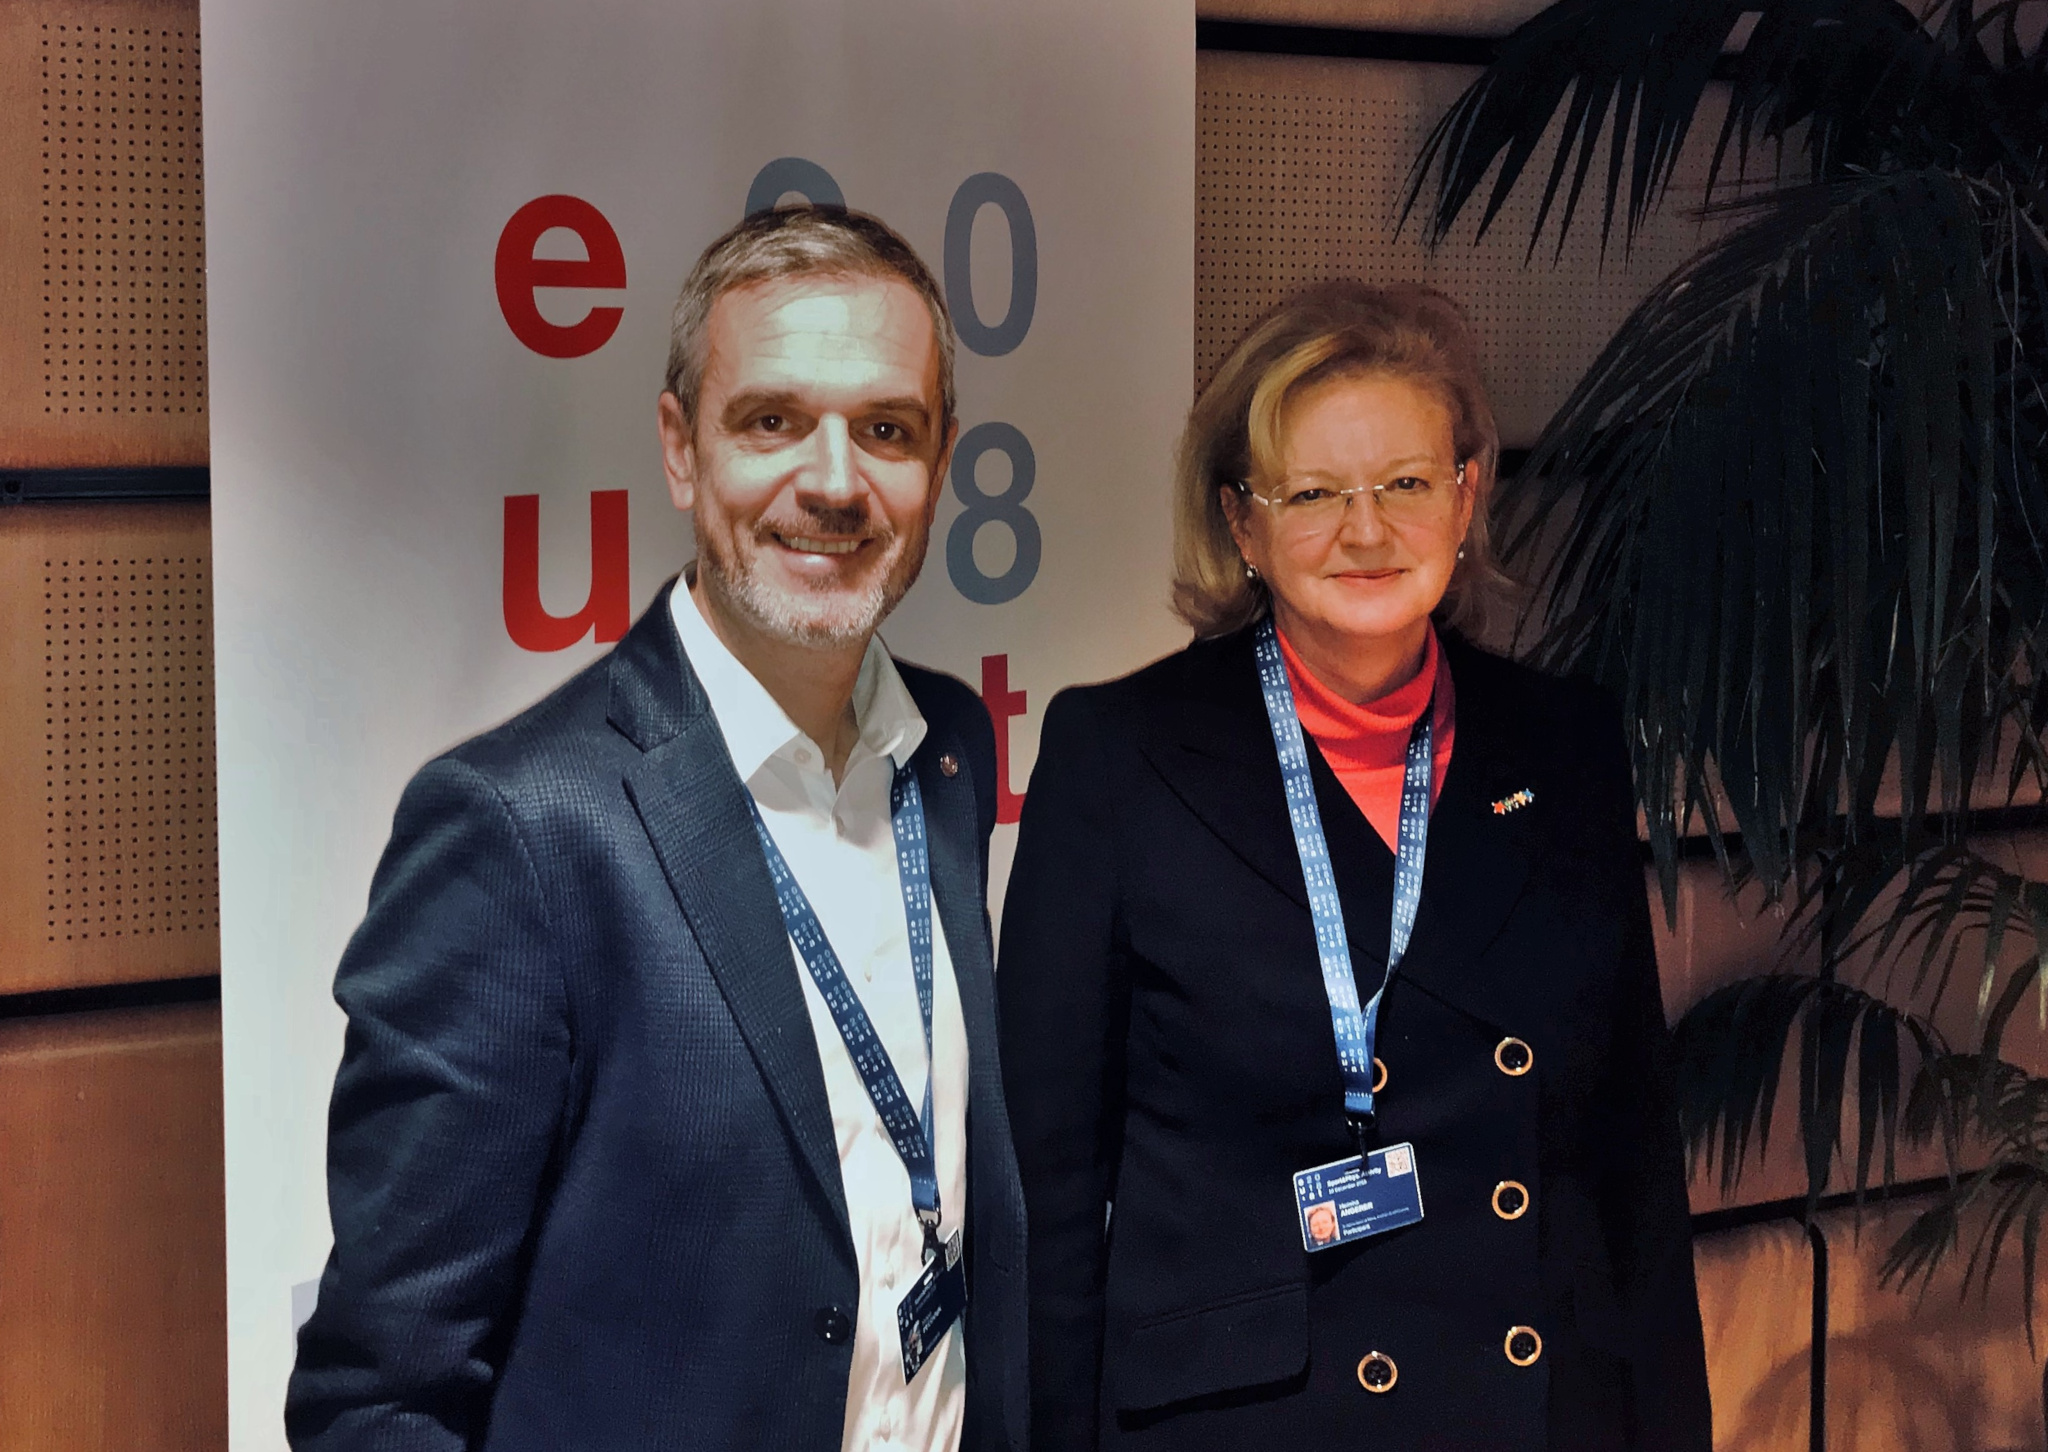 EUSA Secretary General Mr Pecovnik and Unisport Austria President Ms Angerer